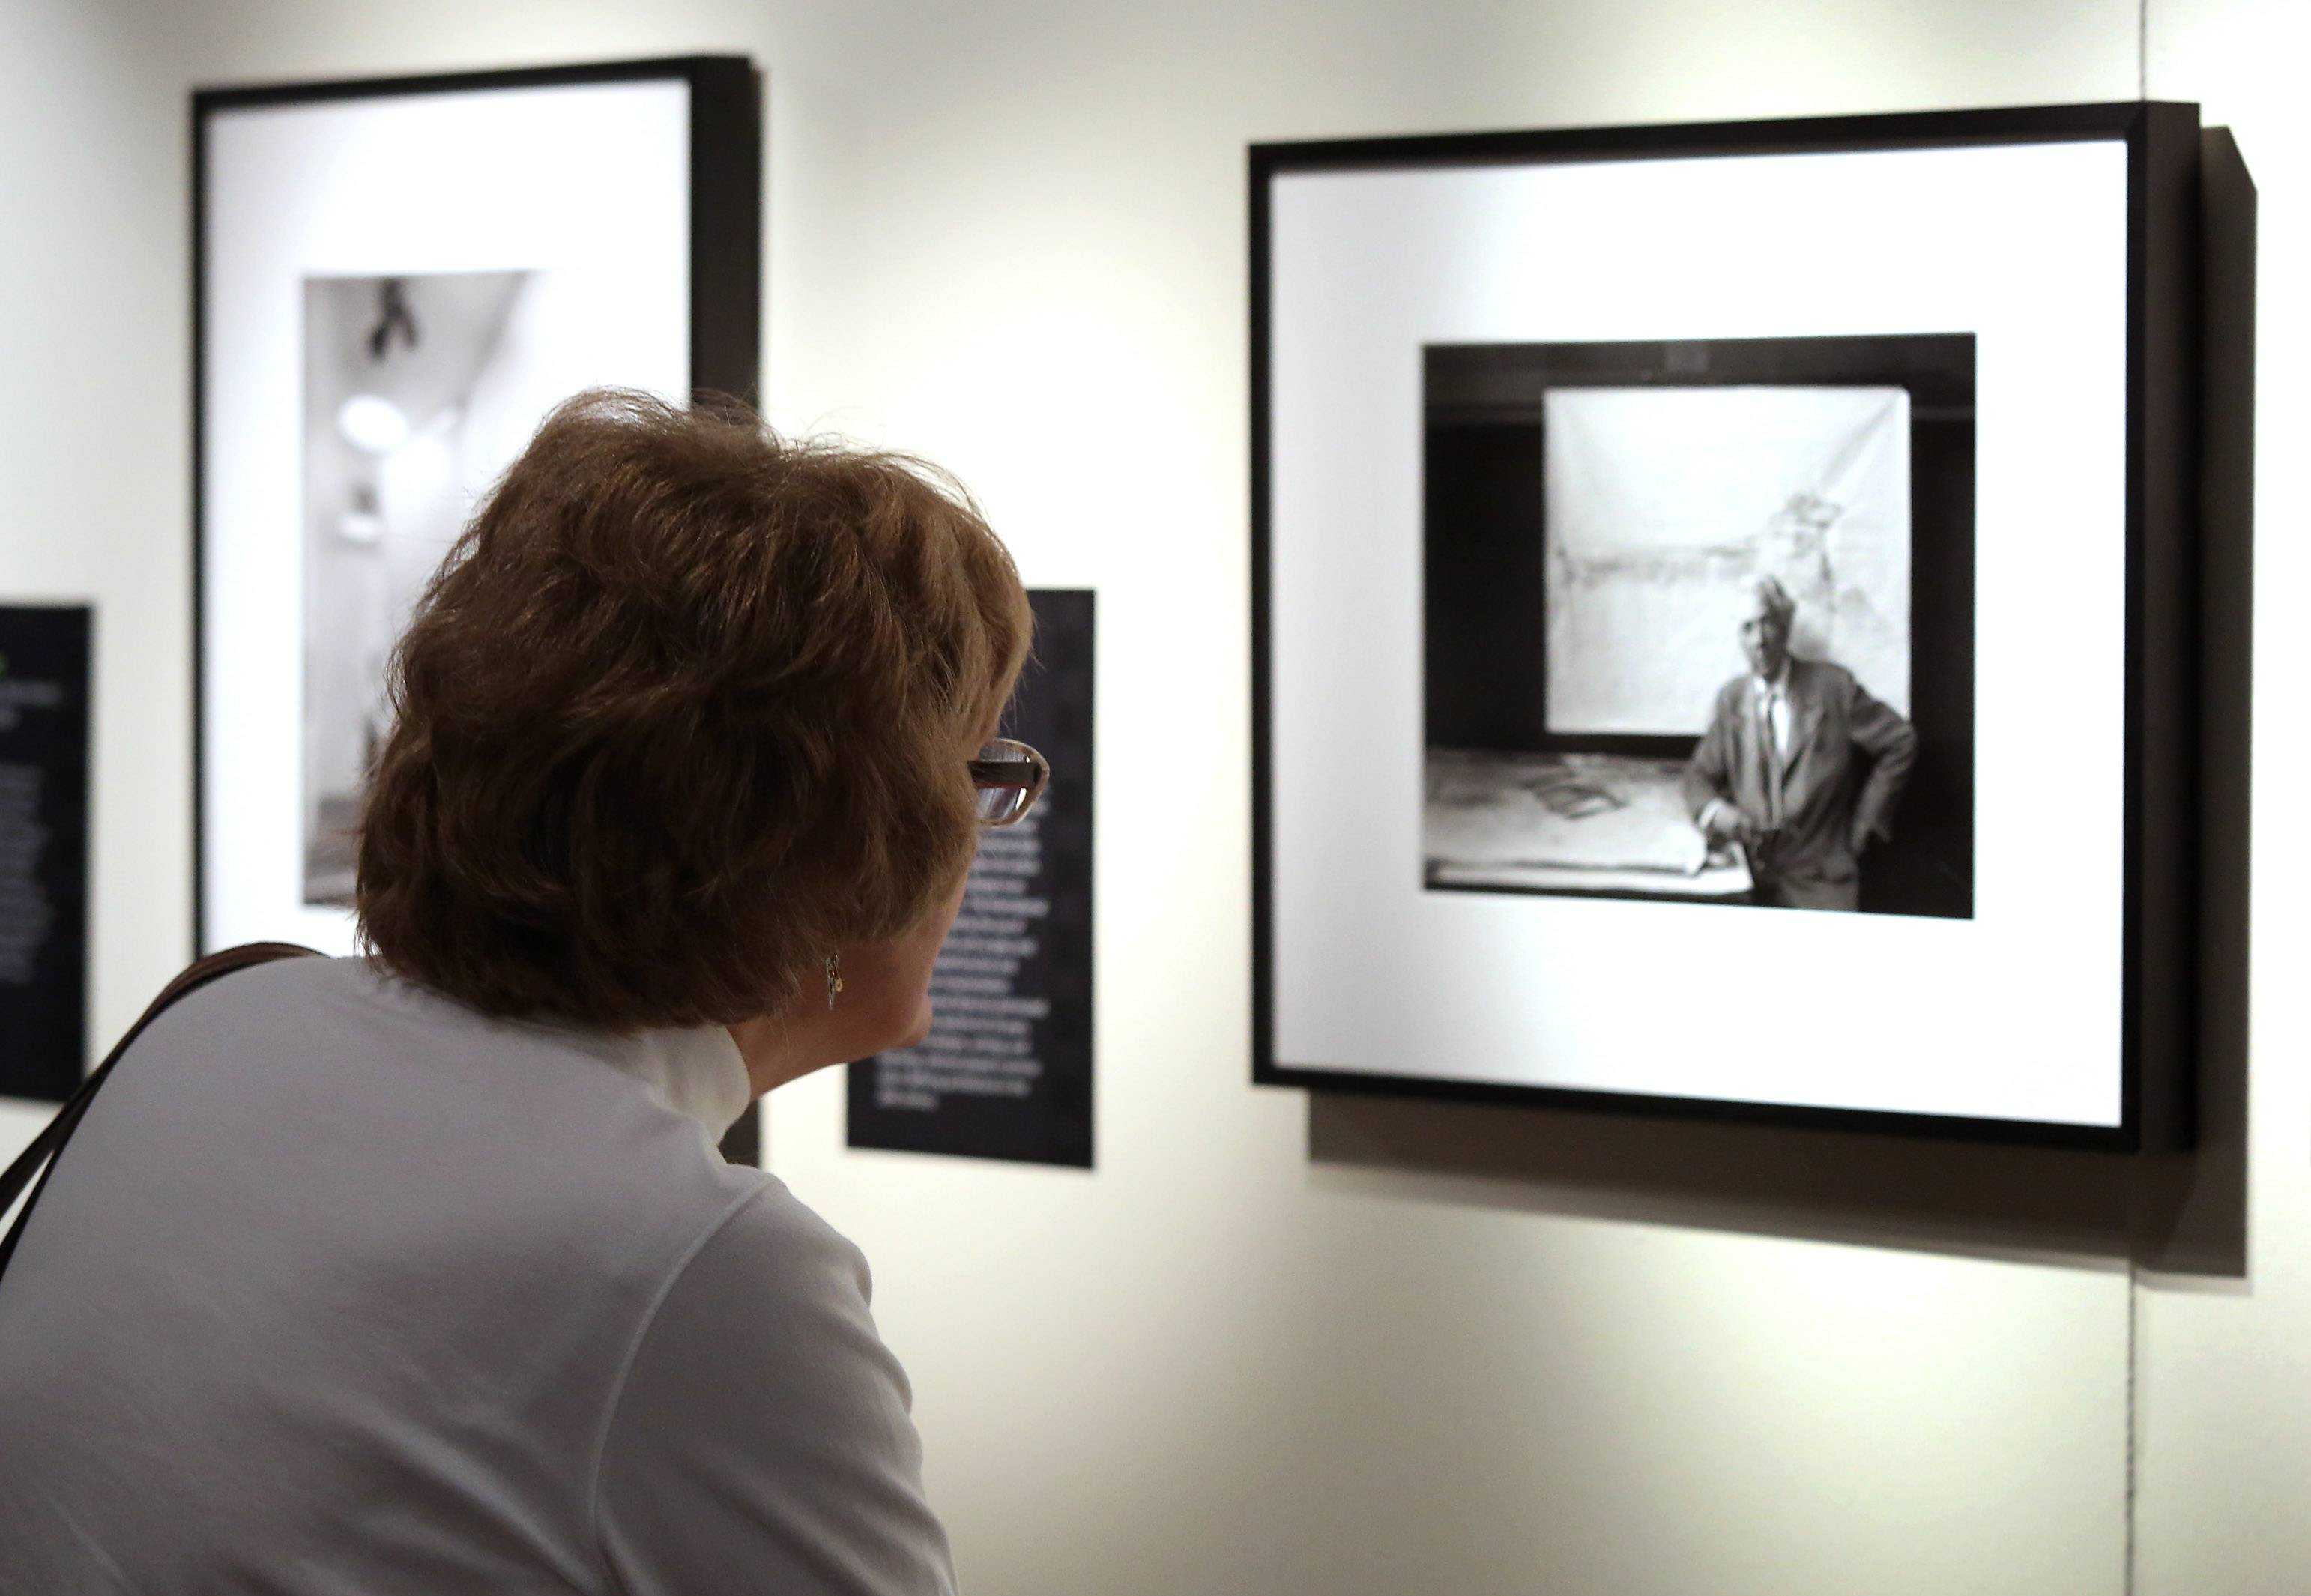 Kathy Maynard of Deerfield looks at a portrait of Frank Lloyd Wright during a tour of the photographic show of Arnold Newman Sunday at the Lake County Discovery Museum near Wauconda.